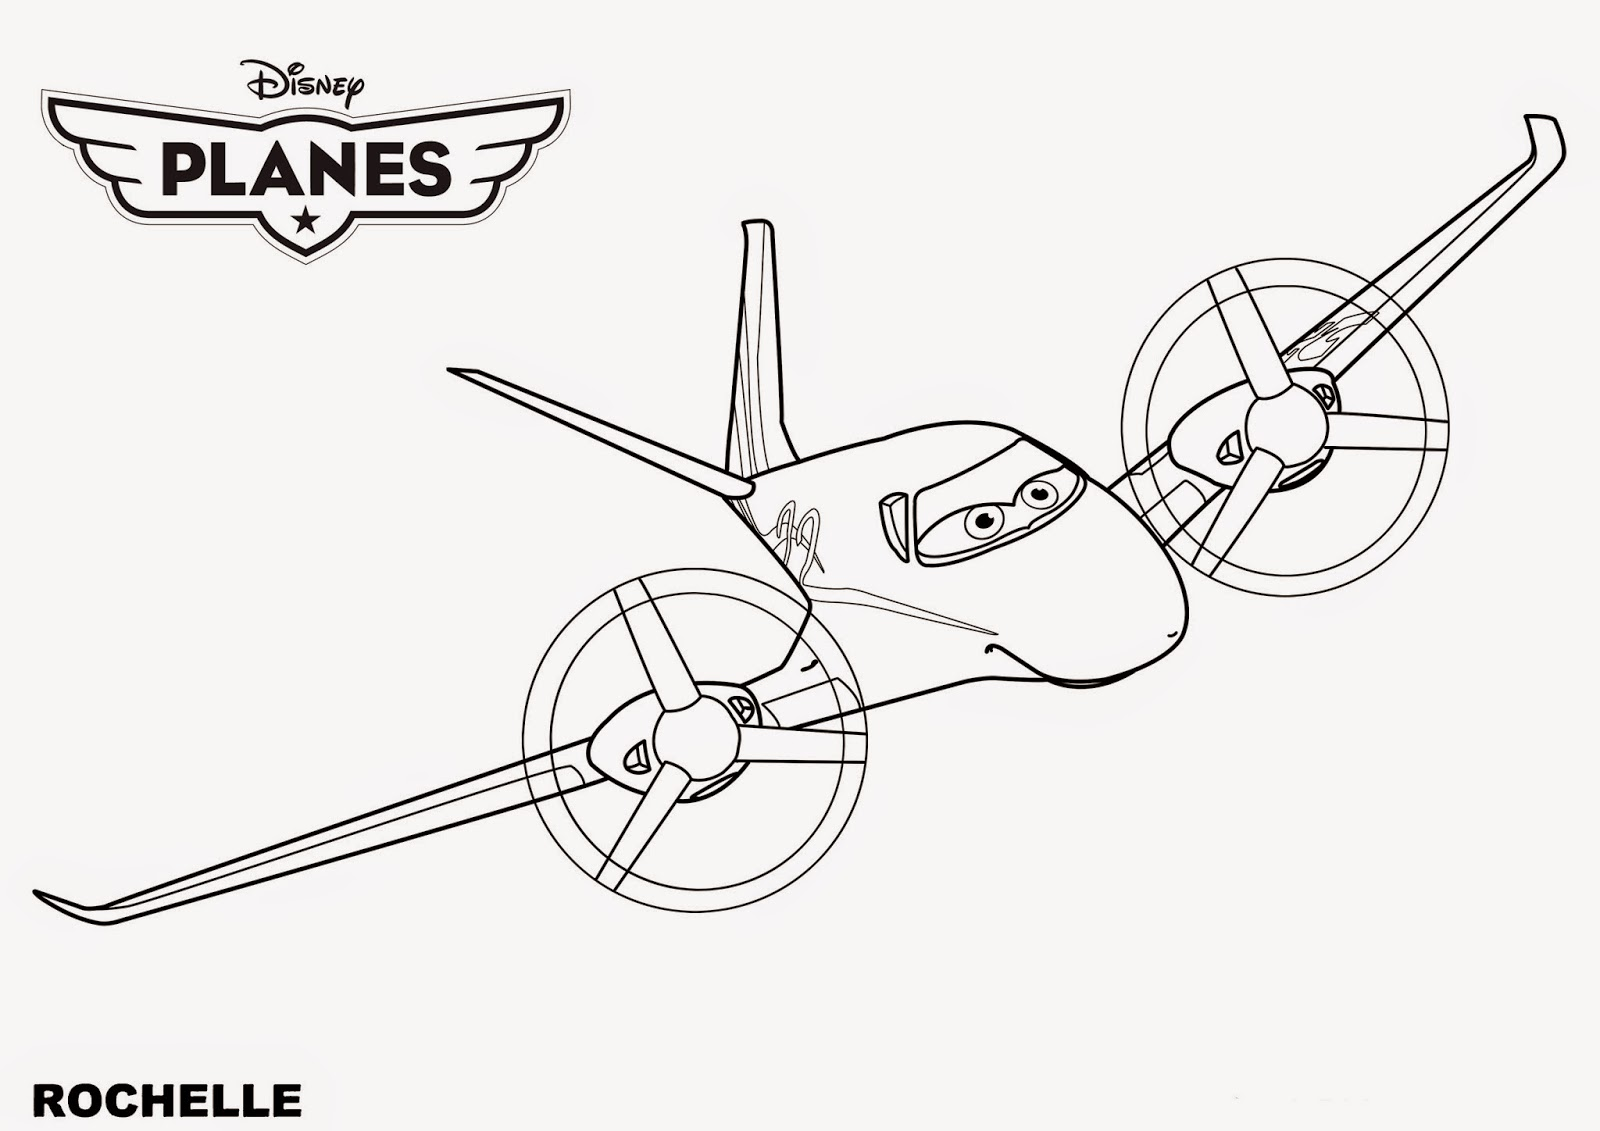 Coloring Pages: Disney Planes Coloring Pages Free and